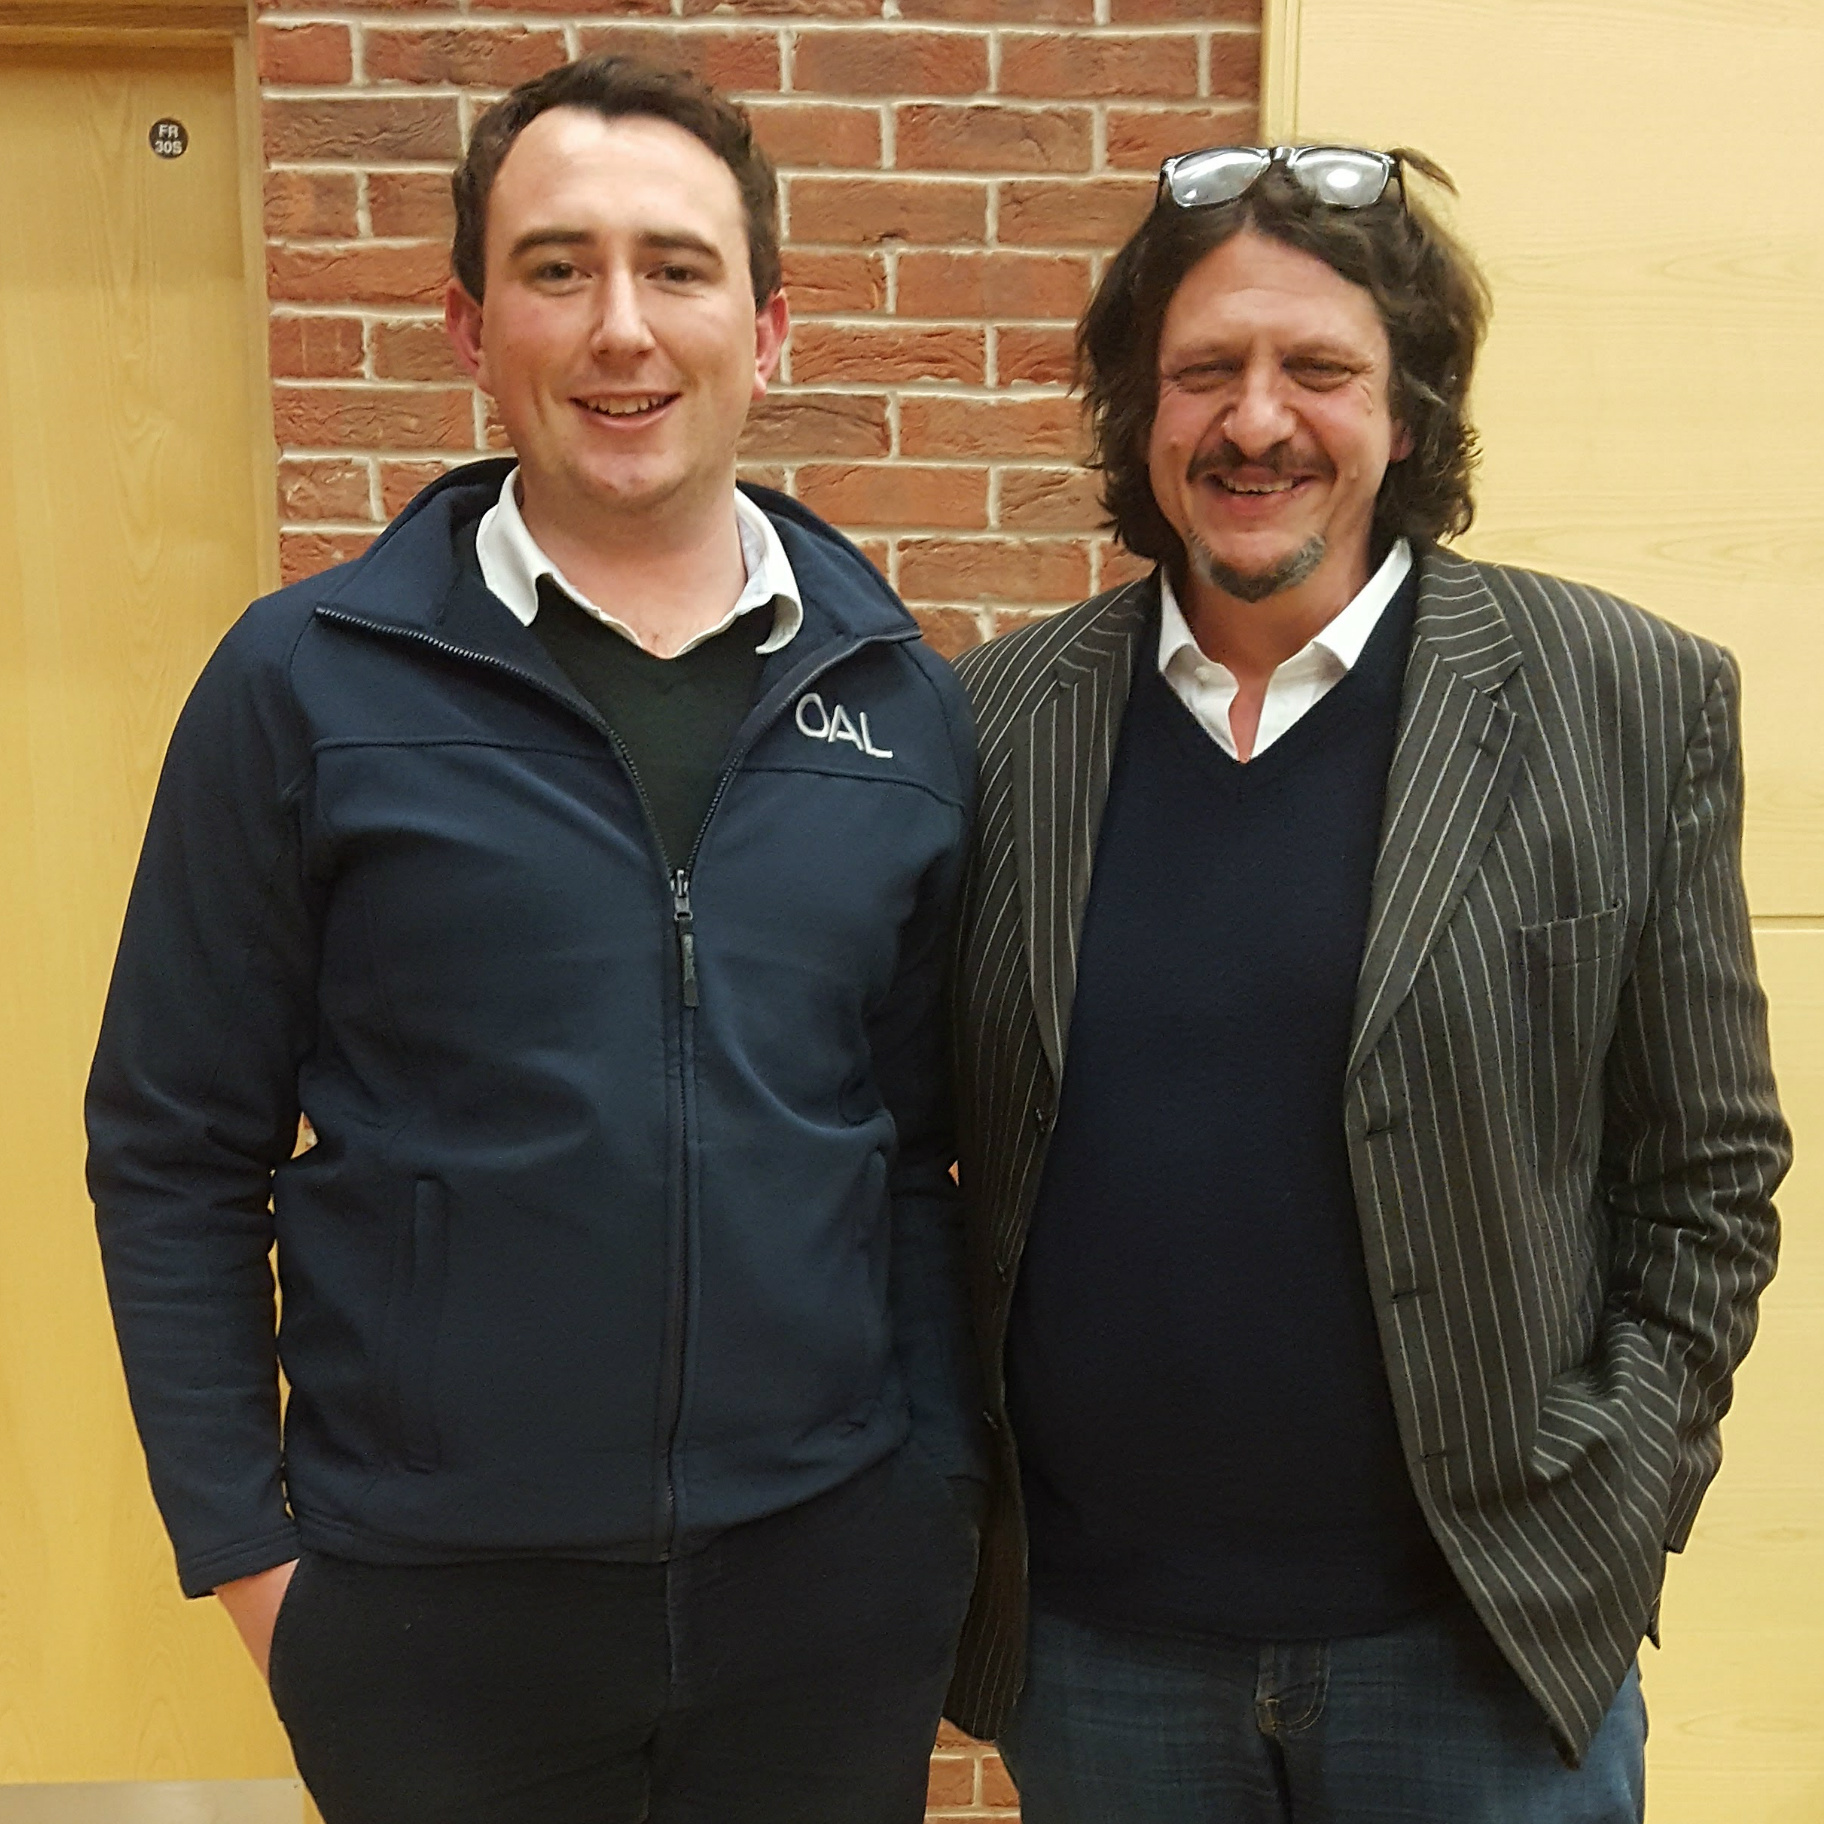 Jake Norman, OAL's Innovation Manager with Jay Rayner